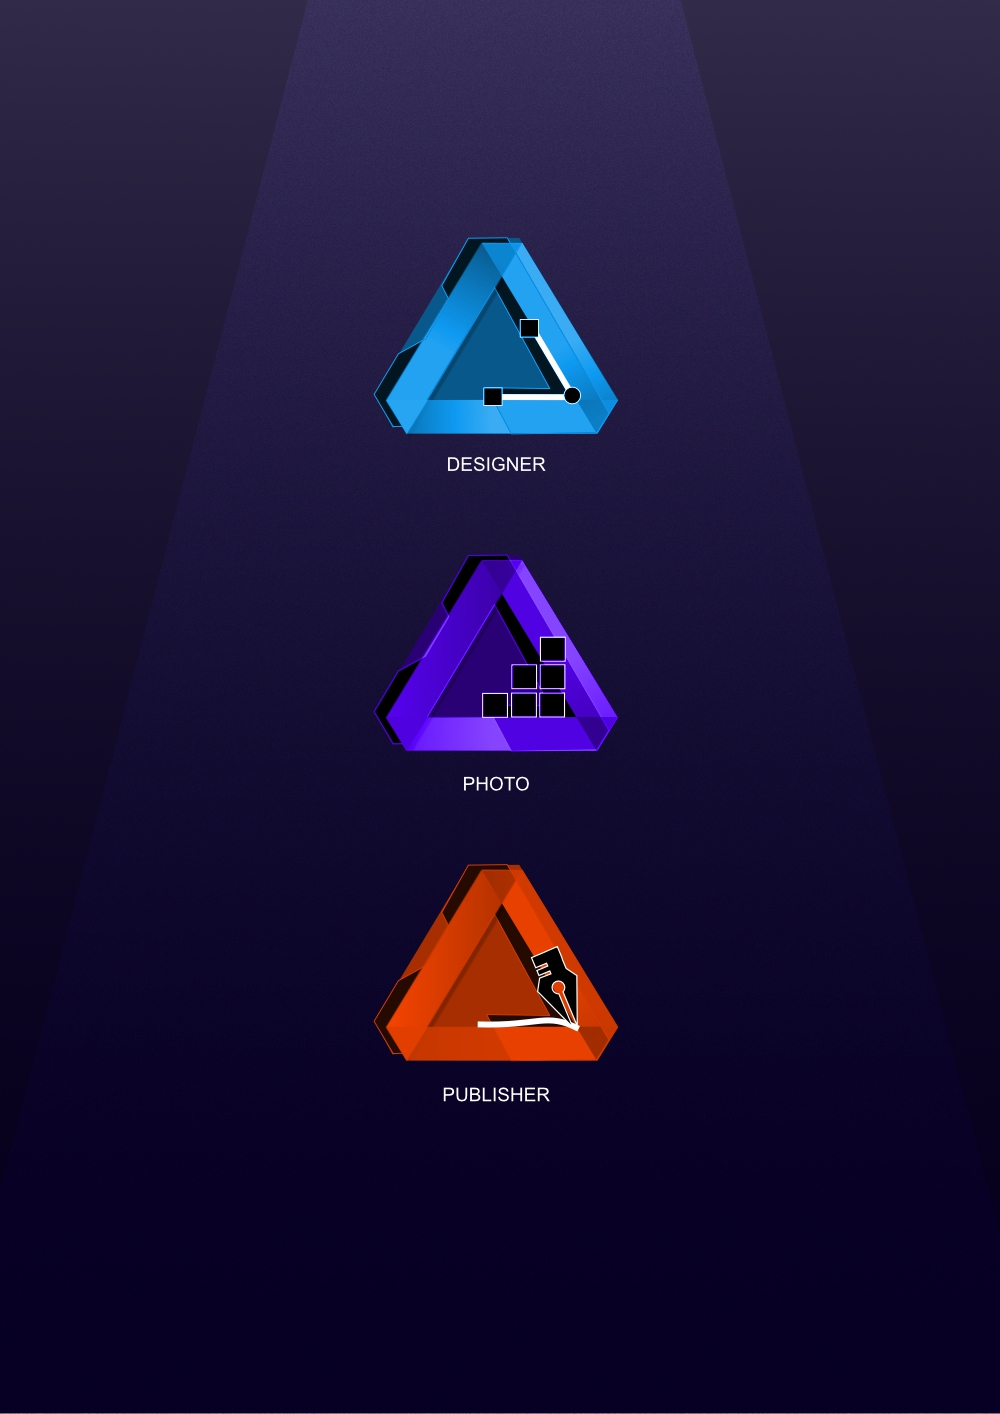 affinity-Logo-Design-saturated-color.jpg